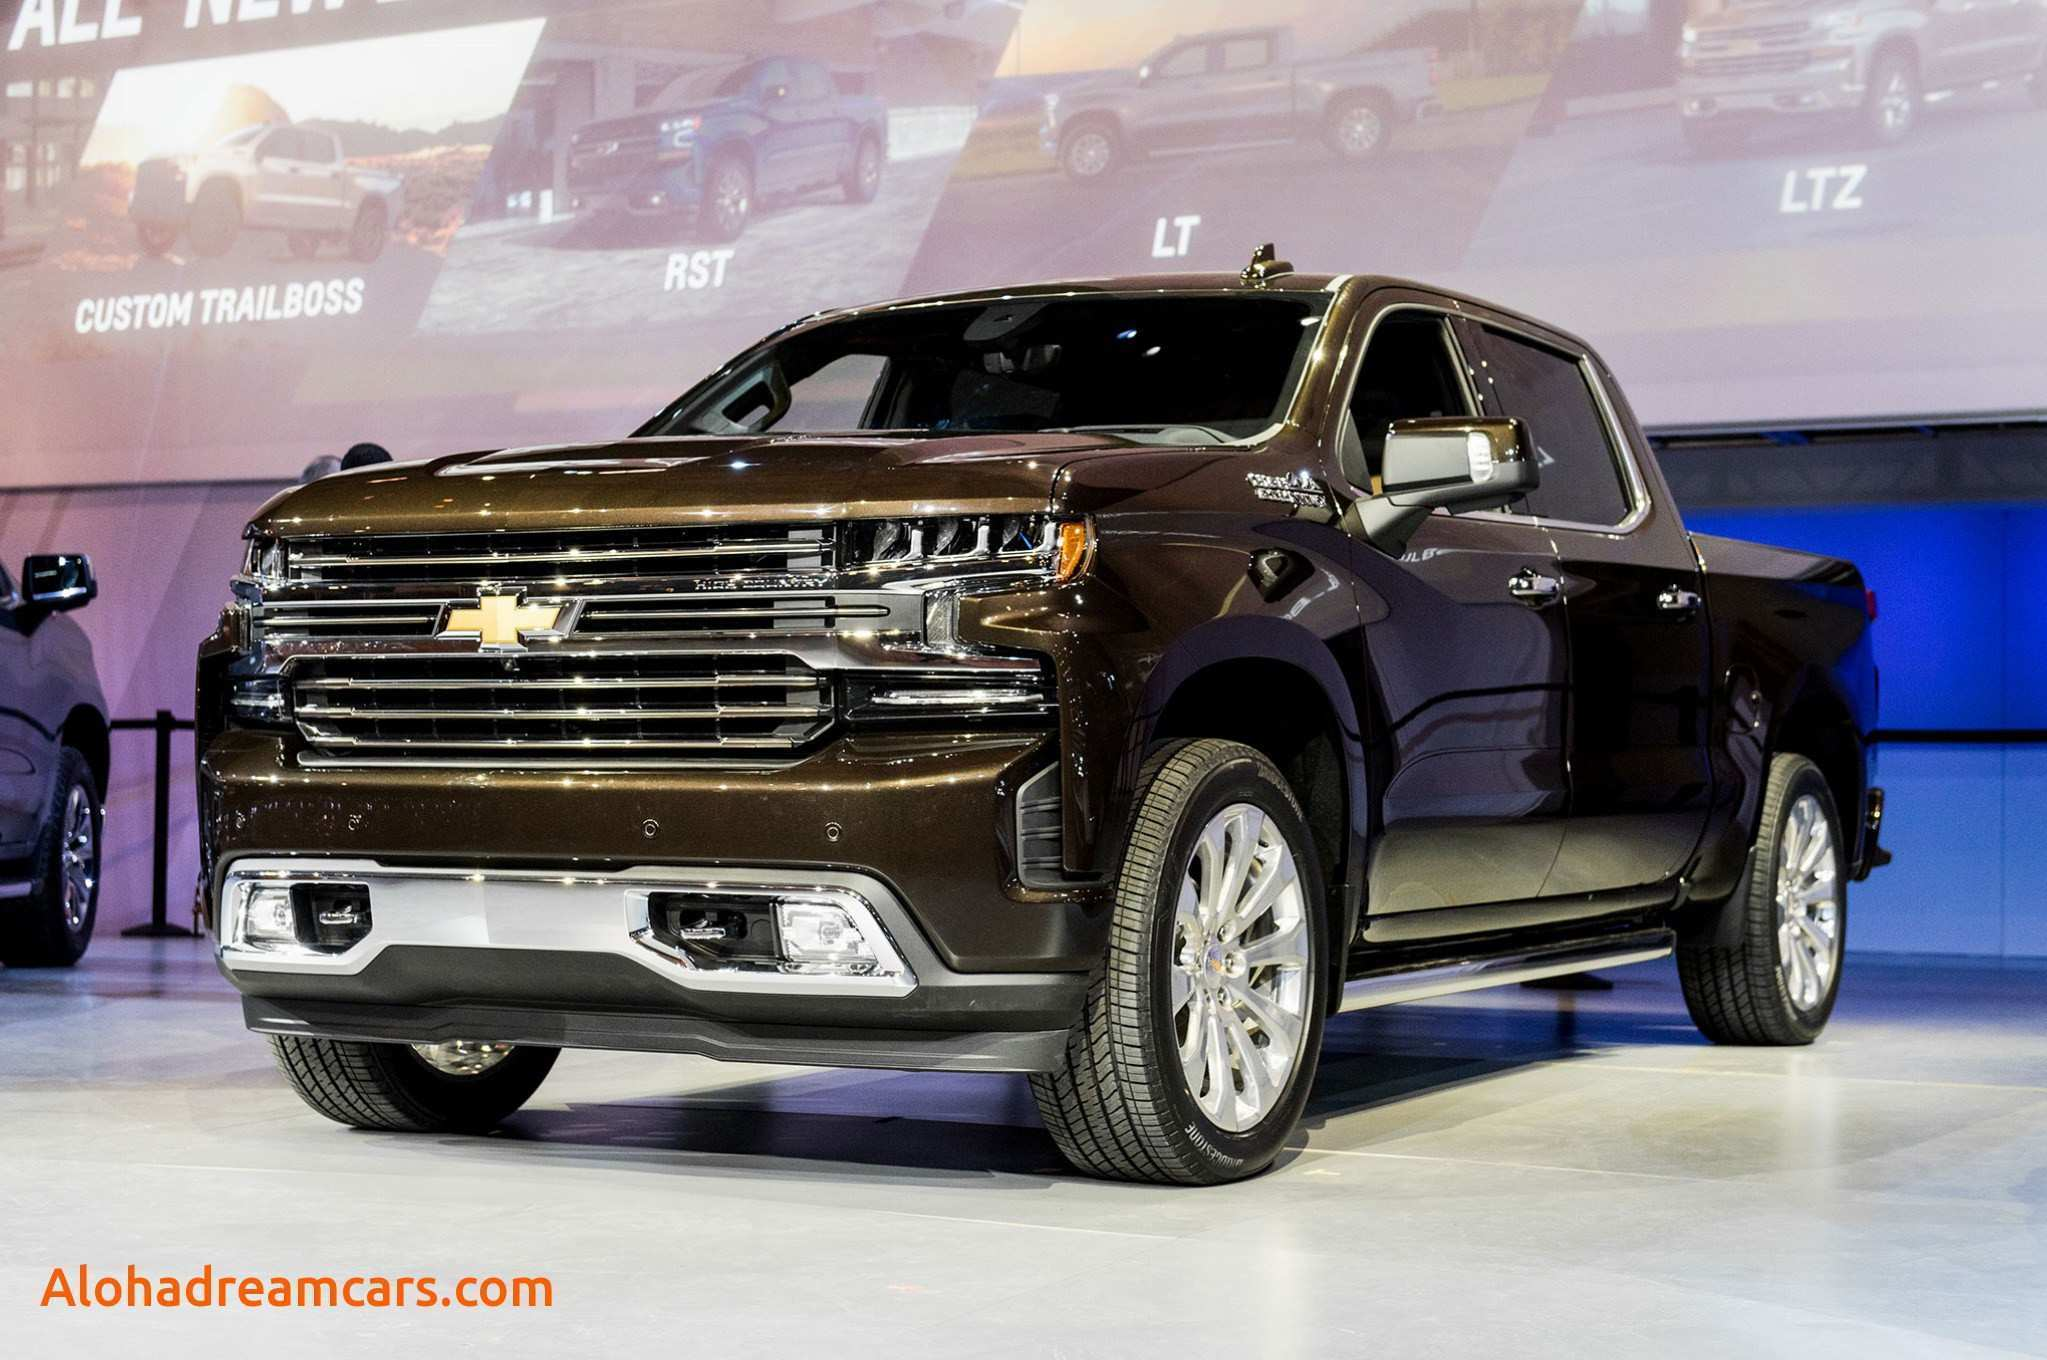 53 Best Review 2019 Chevrolet Avalanche Performance with 2019 Chevrolet Avalanche